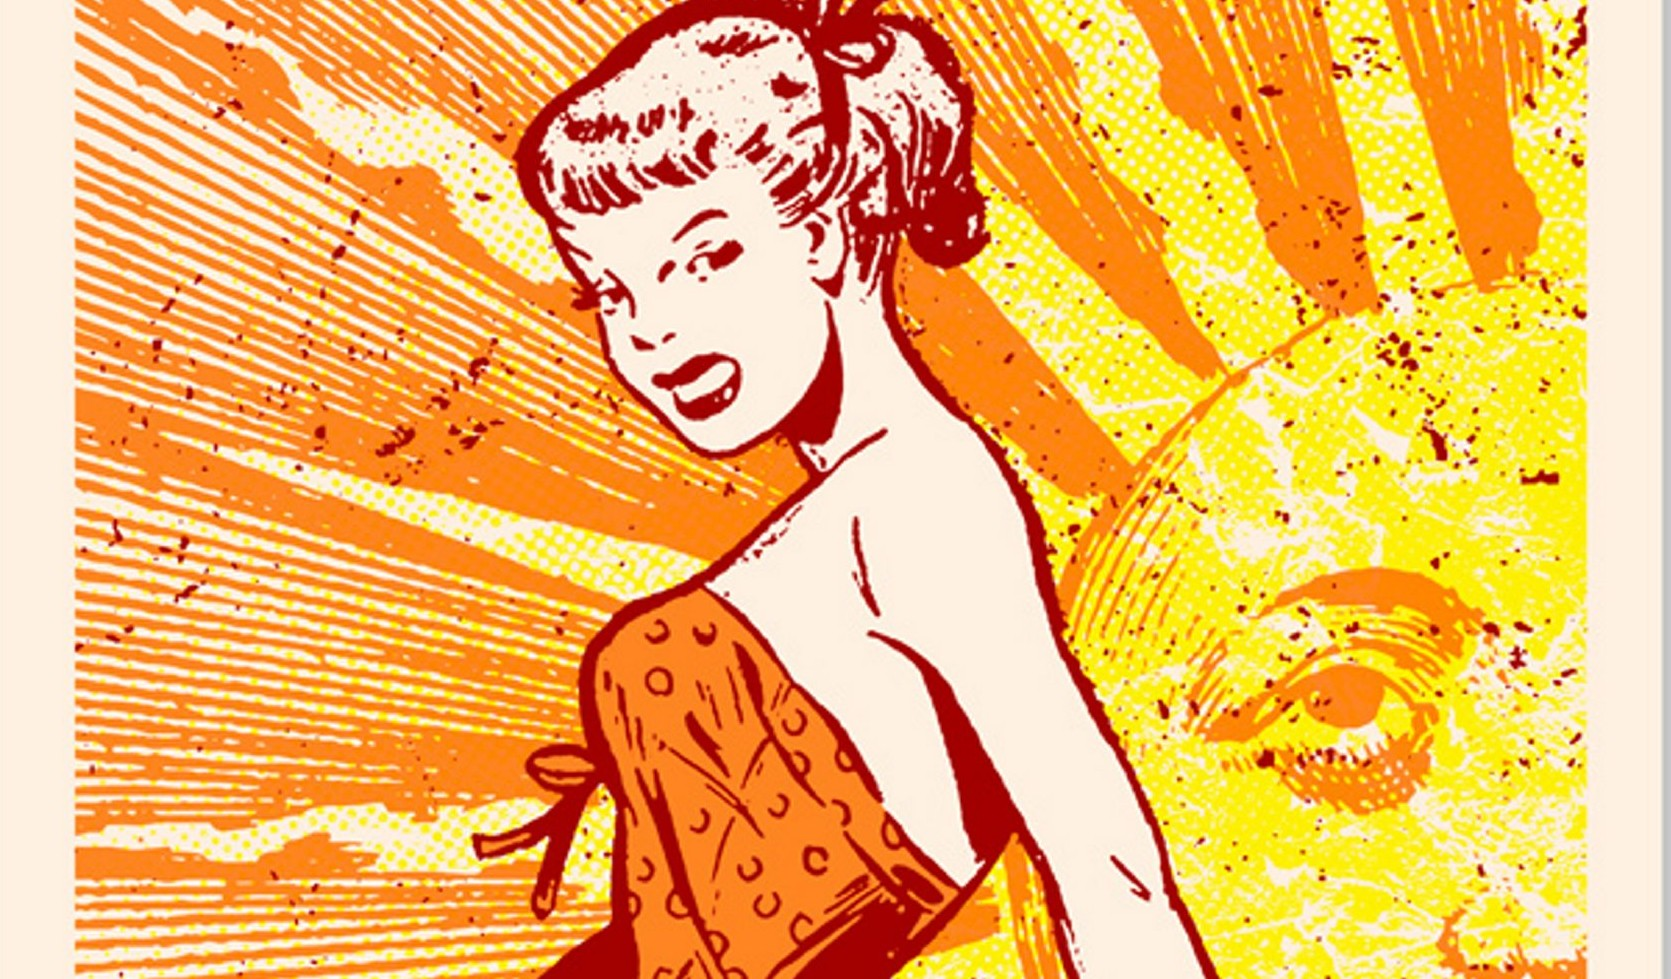 """""""Summer Girl,"""" a screen print by the artist Vintango, will be on view during 464 Gallery's seventh annual members' show through June 3."""